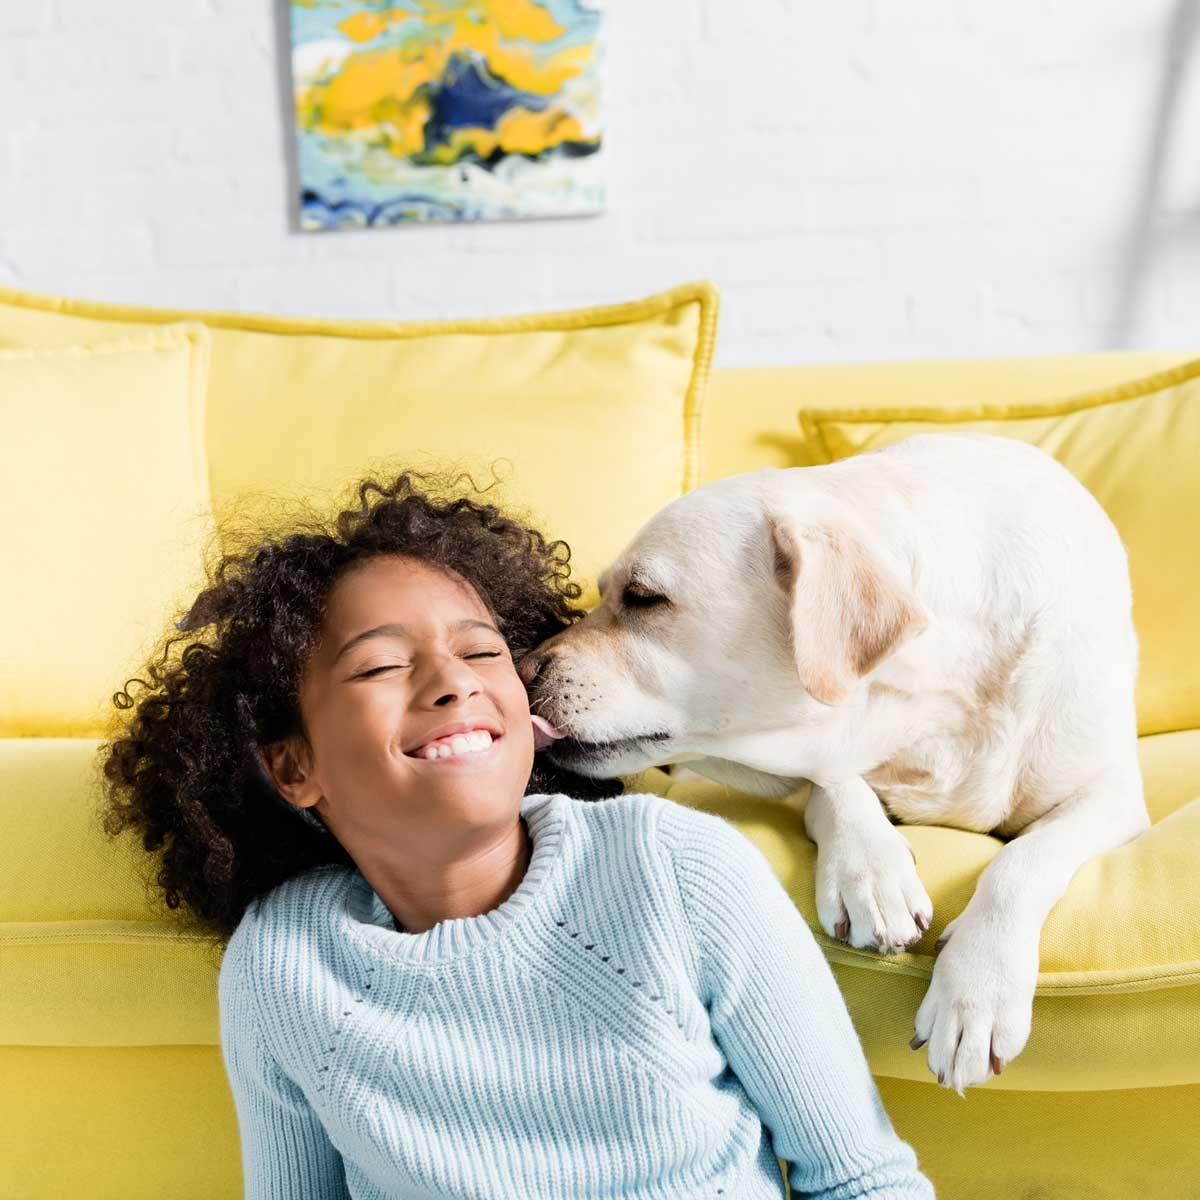 Dog Licking Girl Gettyimages 1285675959